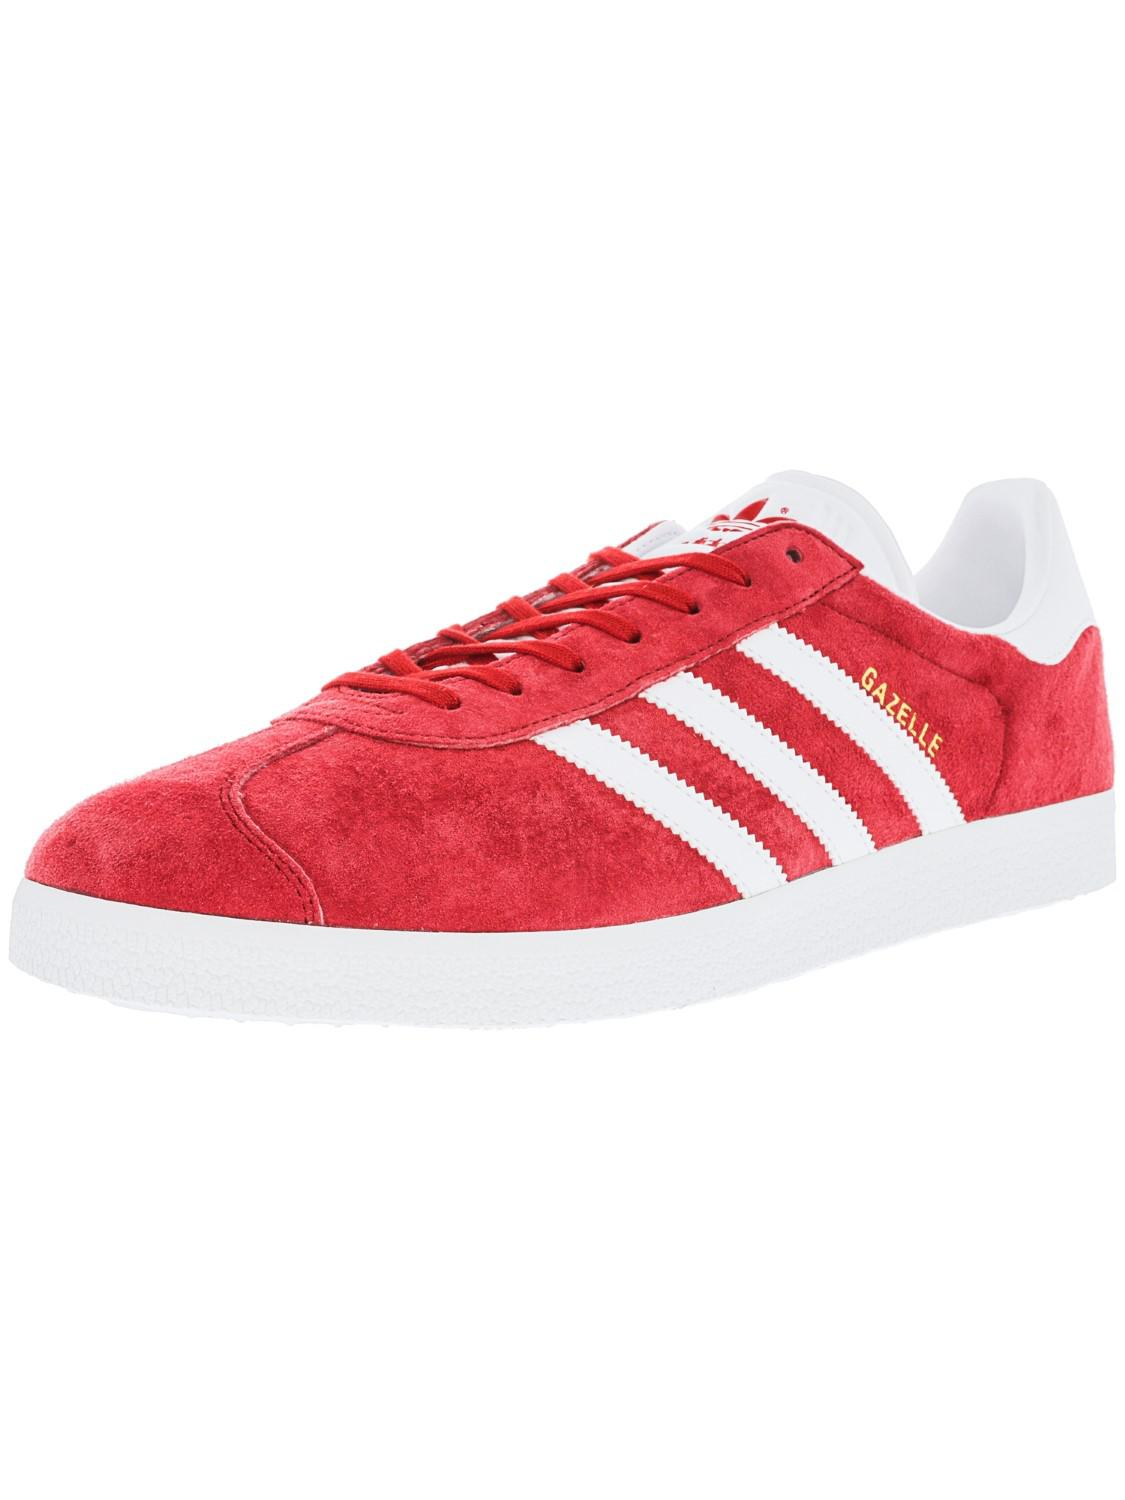 reputable site 45549 a14fb Gallery. Previously sold at Jet.com · Mens Adidas Gazelle